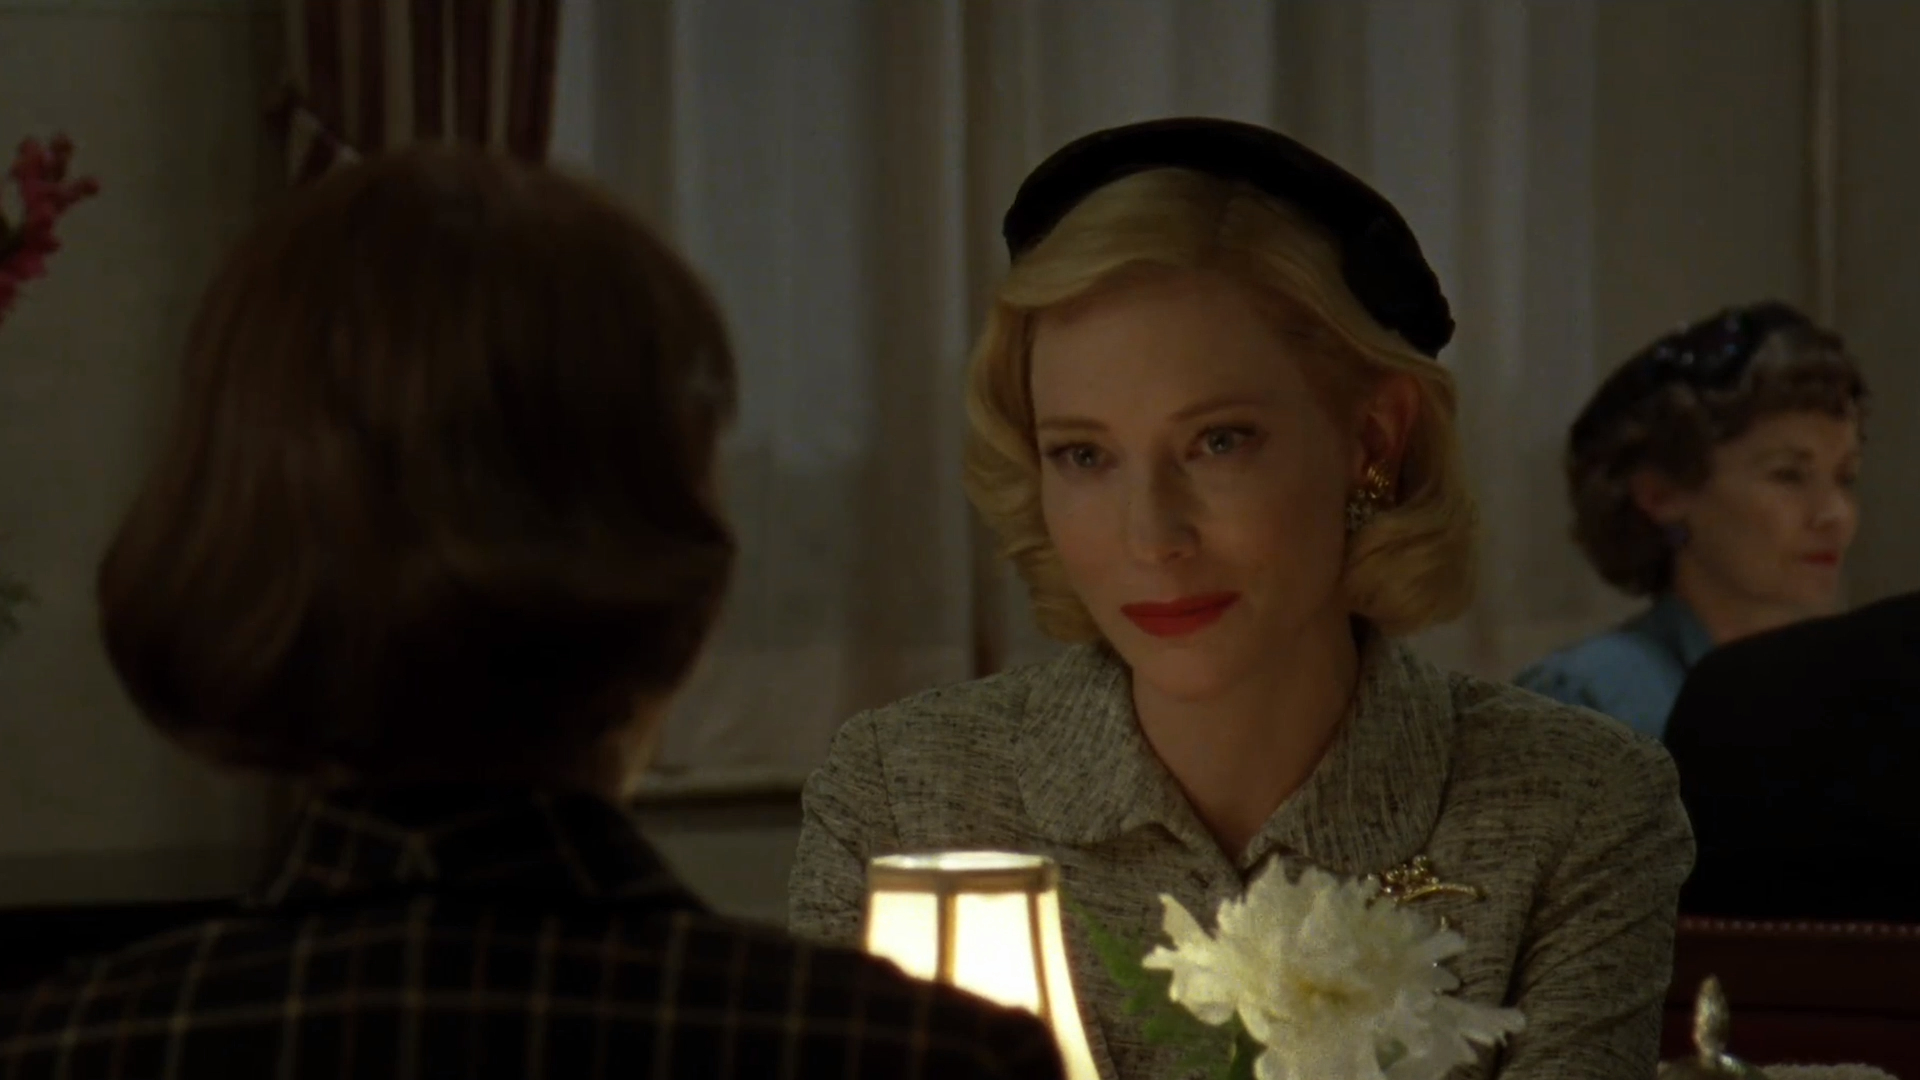 'Carol' official trailer